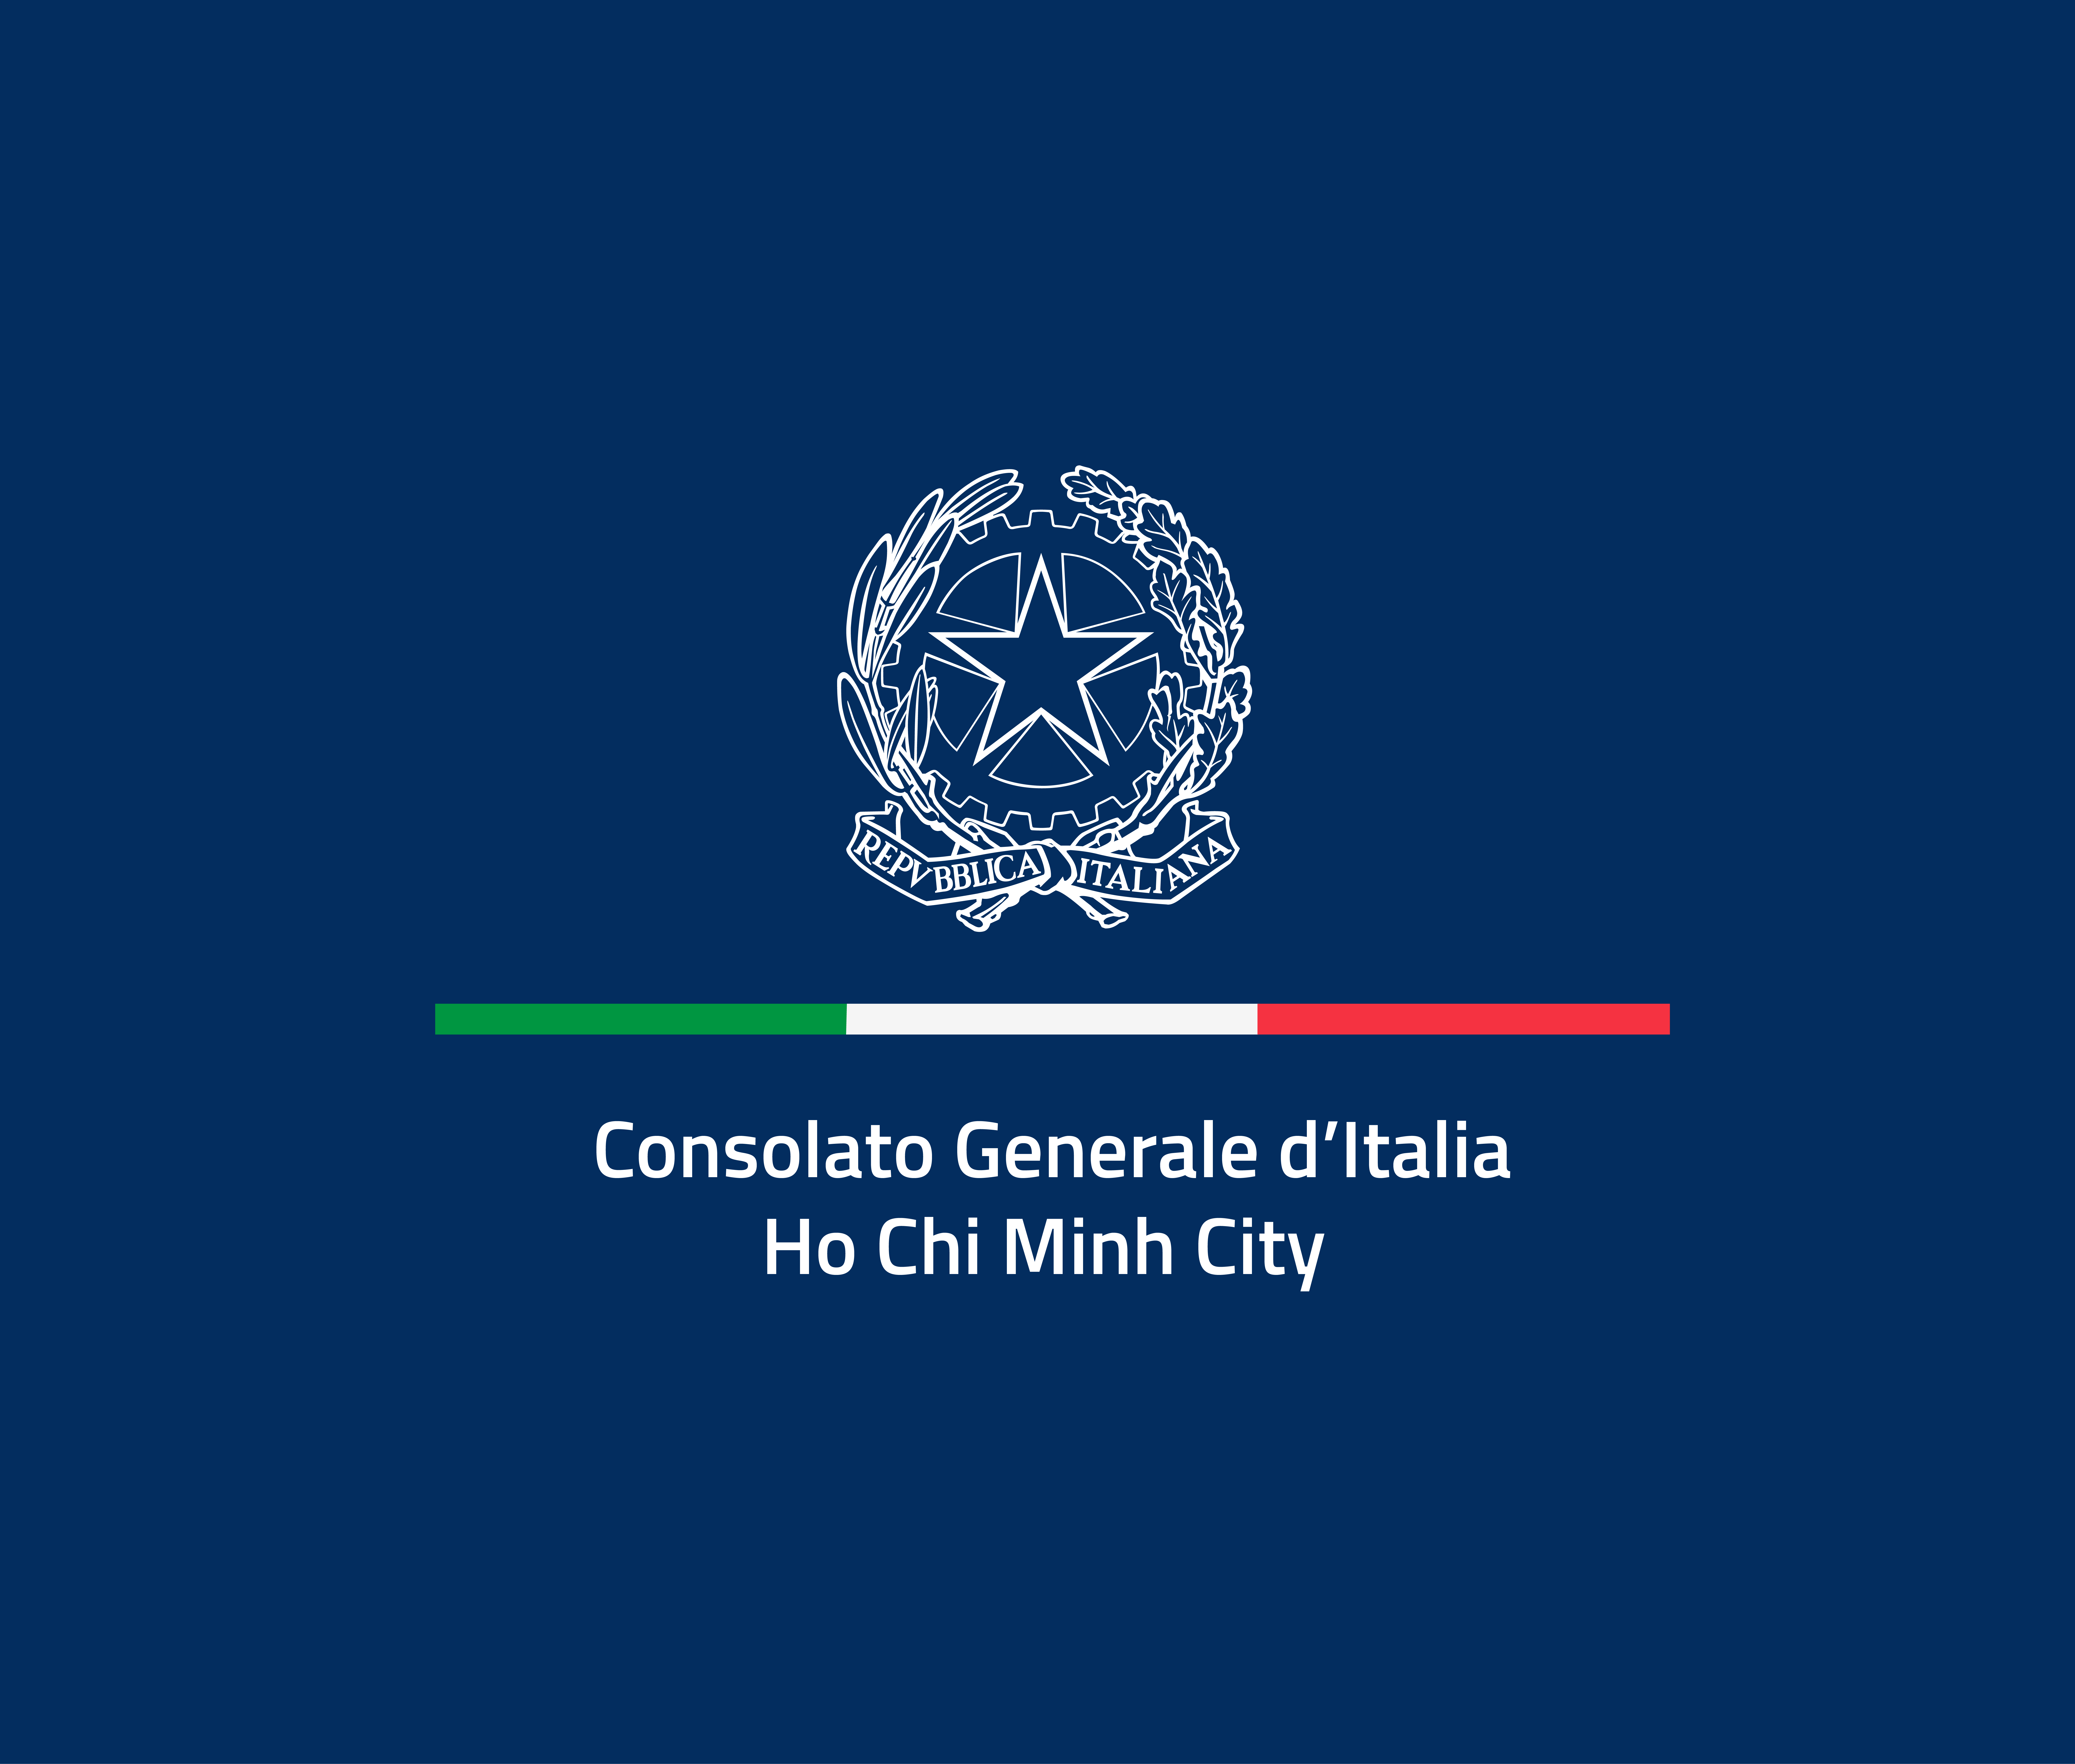 Consulate General of Italy Ho Chi Minh City